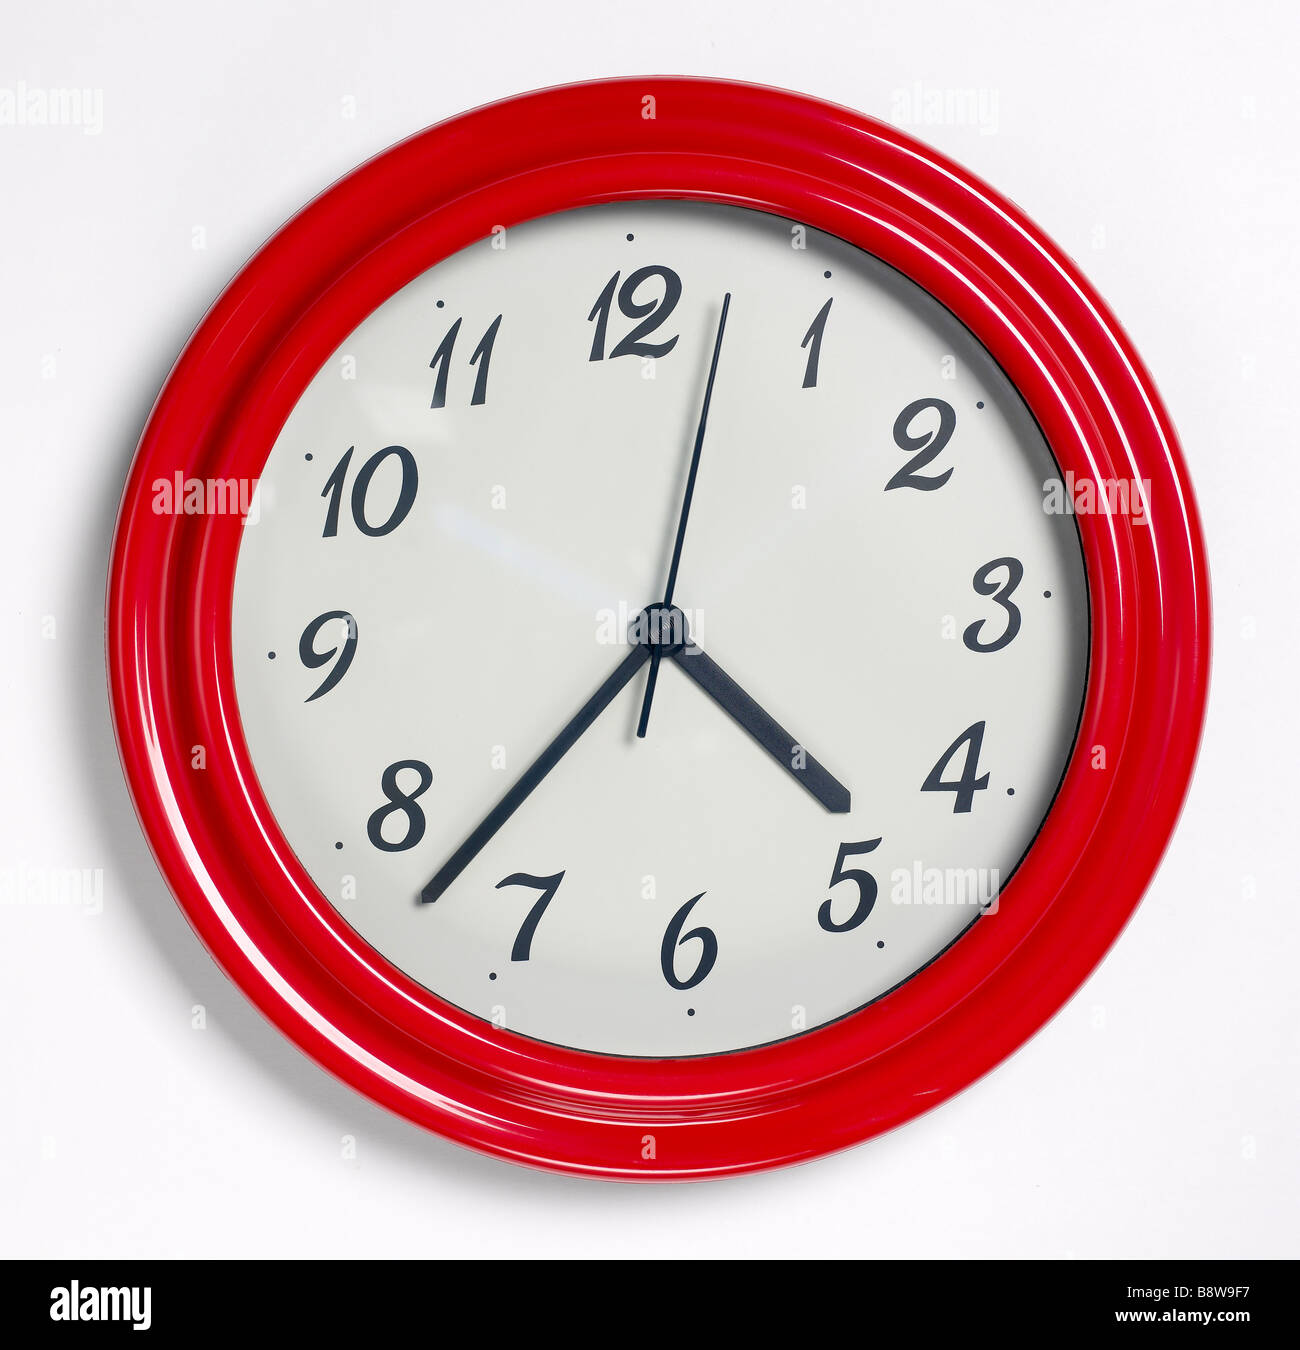 Red Wall Clock - Stock Image